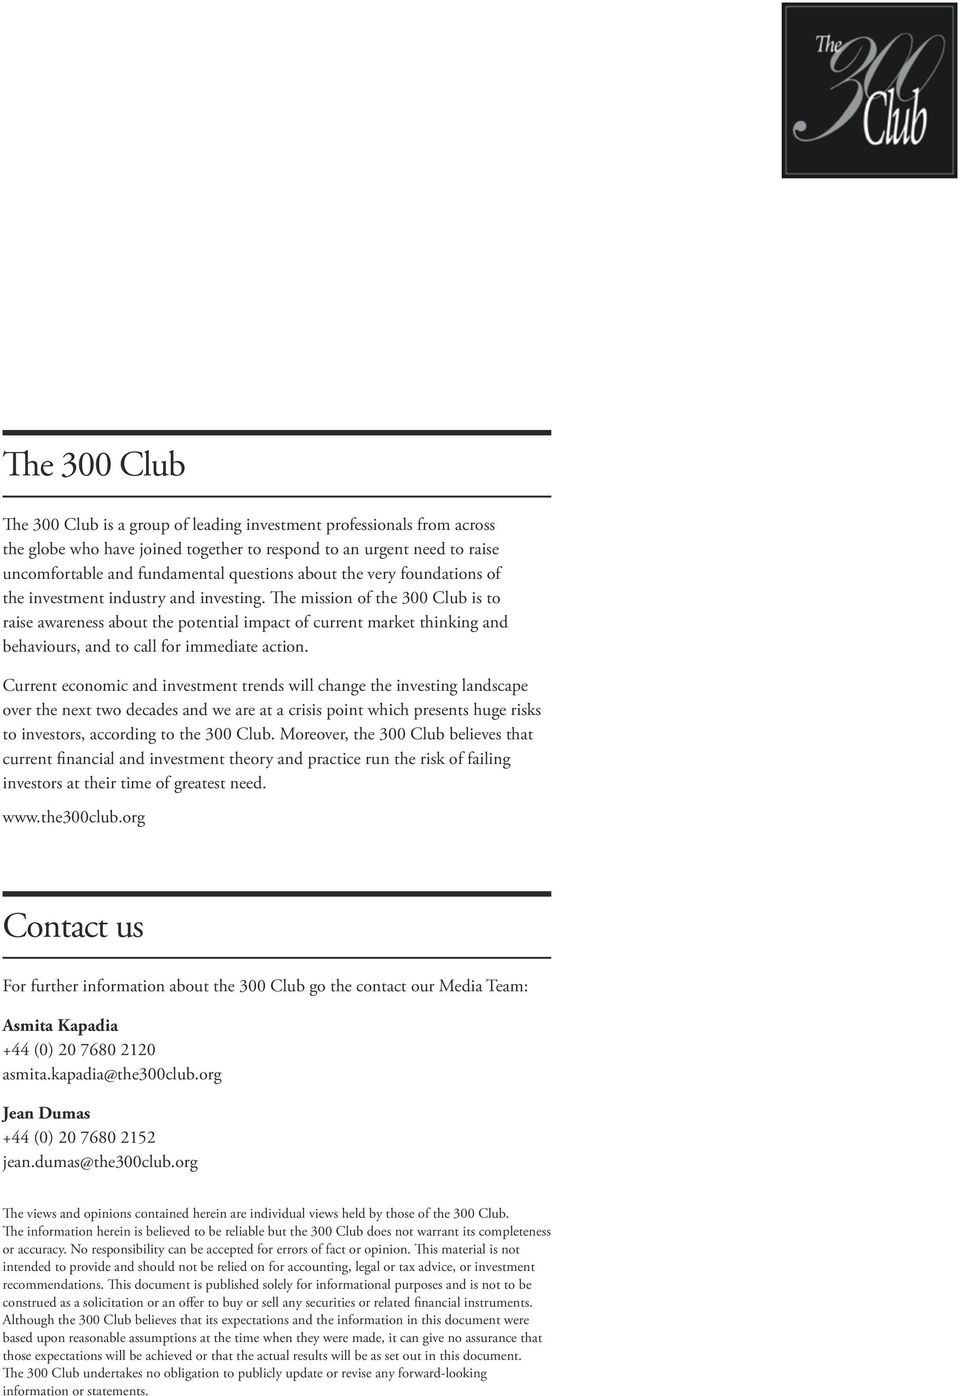 The mission of the 300 Club is to raise awareness about the potential impact of current market thinking and behaviours, and to call for immediate action.